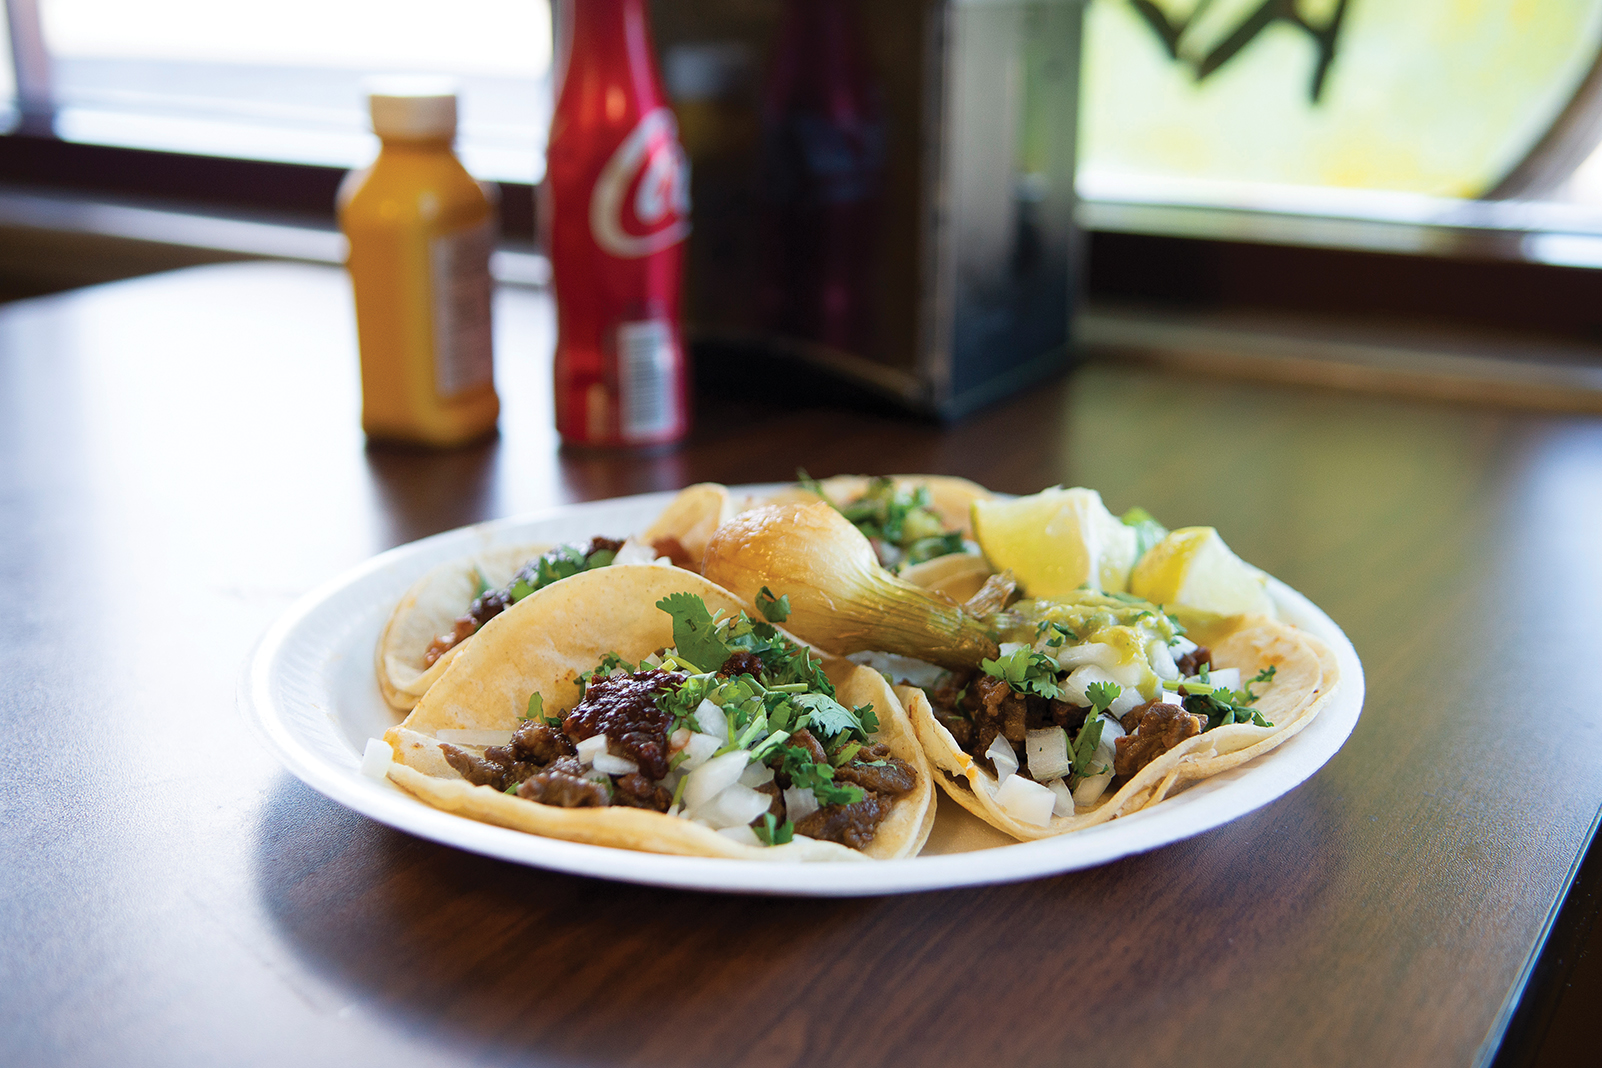 Carne asada tacos from La Campechana Taqueria, in Waite Park, about 10 miles from the St. John's University campus